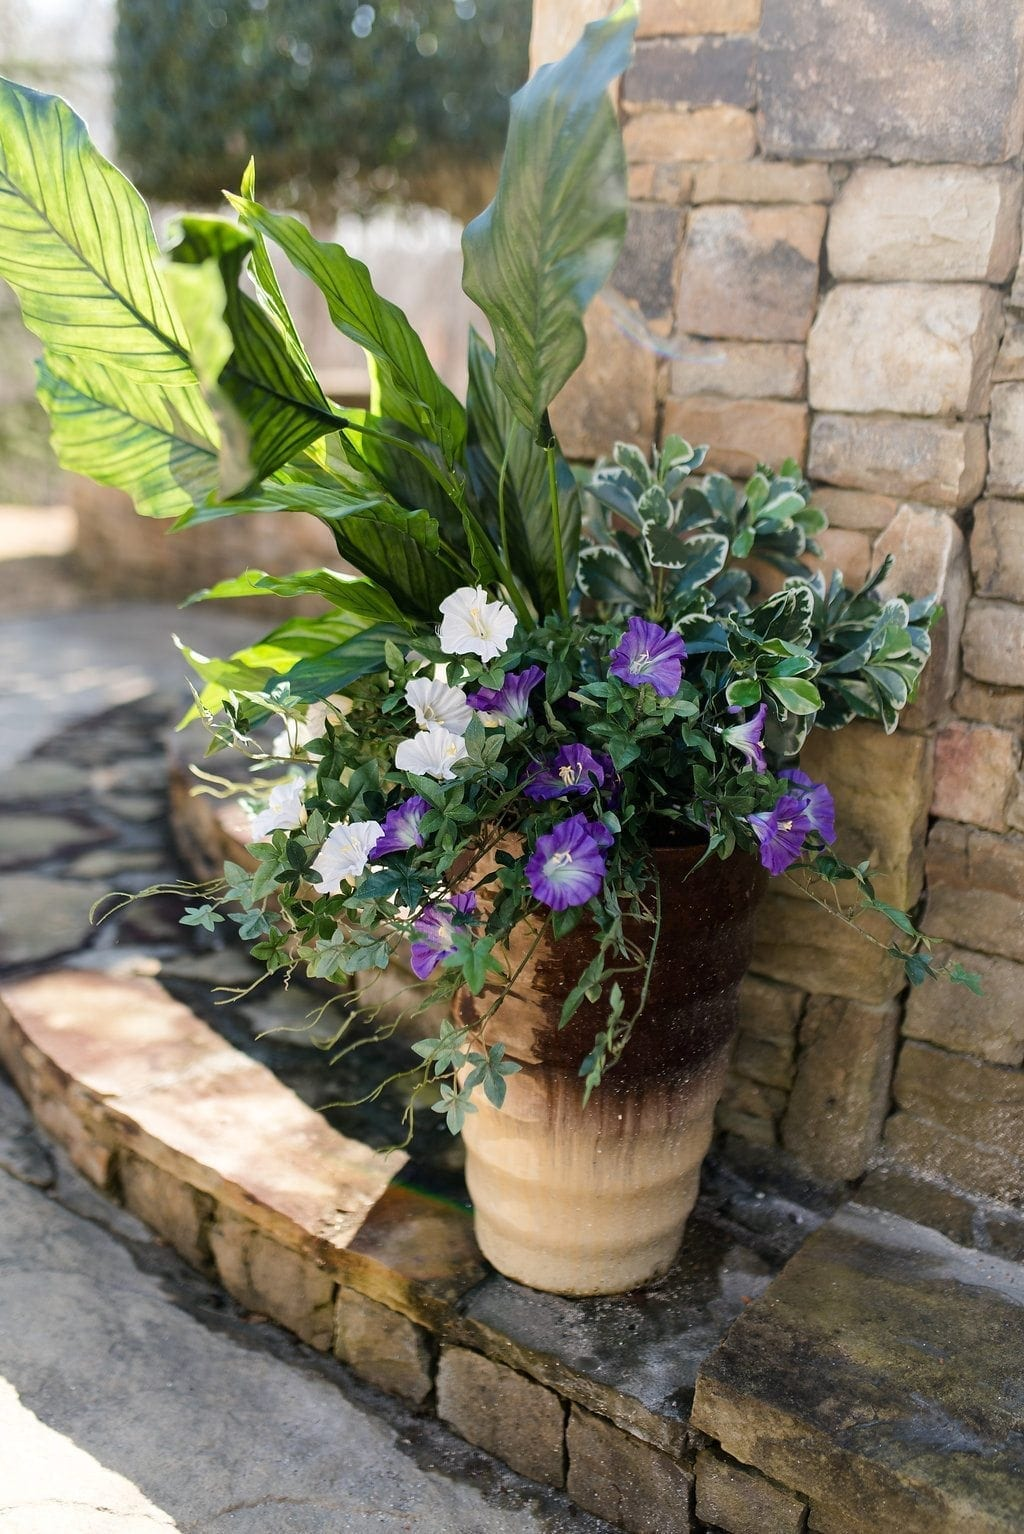 Faux flowers used outside in containers that don't get enough water or sun.